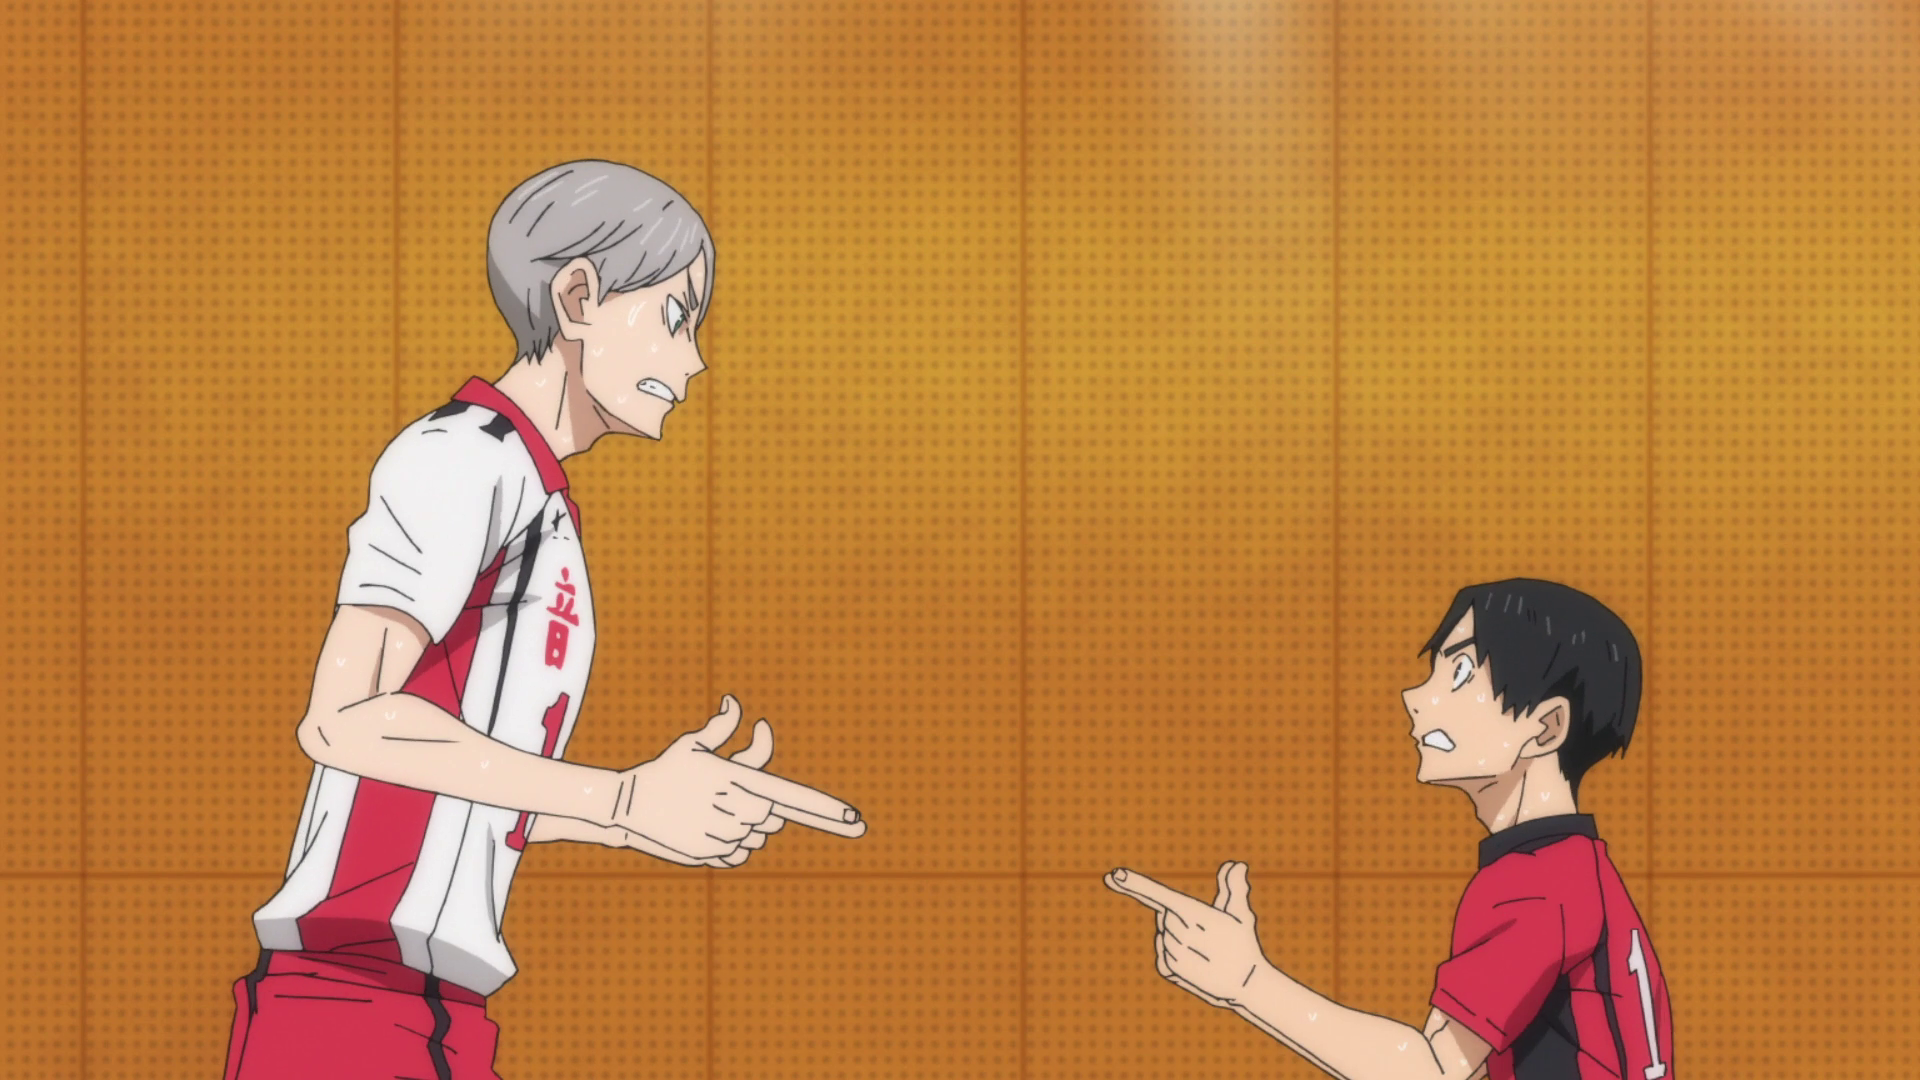 Pin By Xxgh0stg1rlxx On A N I M E In 2020 Haikyuu Anime Haikyuu Nekoma Haikyuu Characters